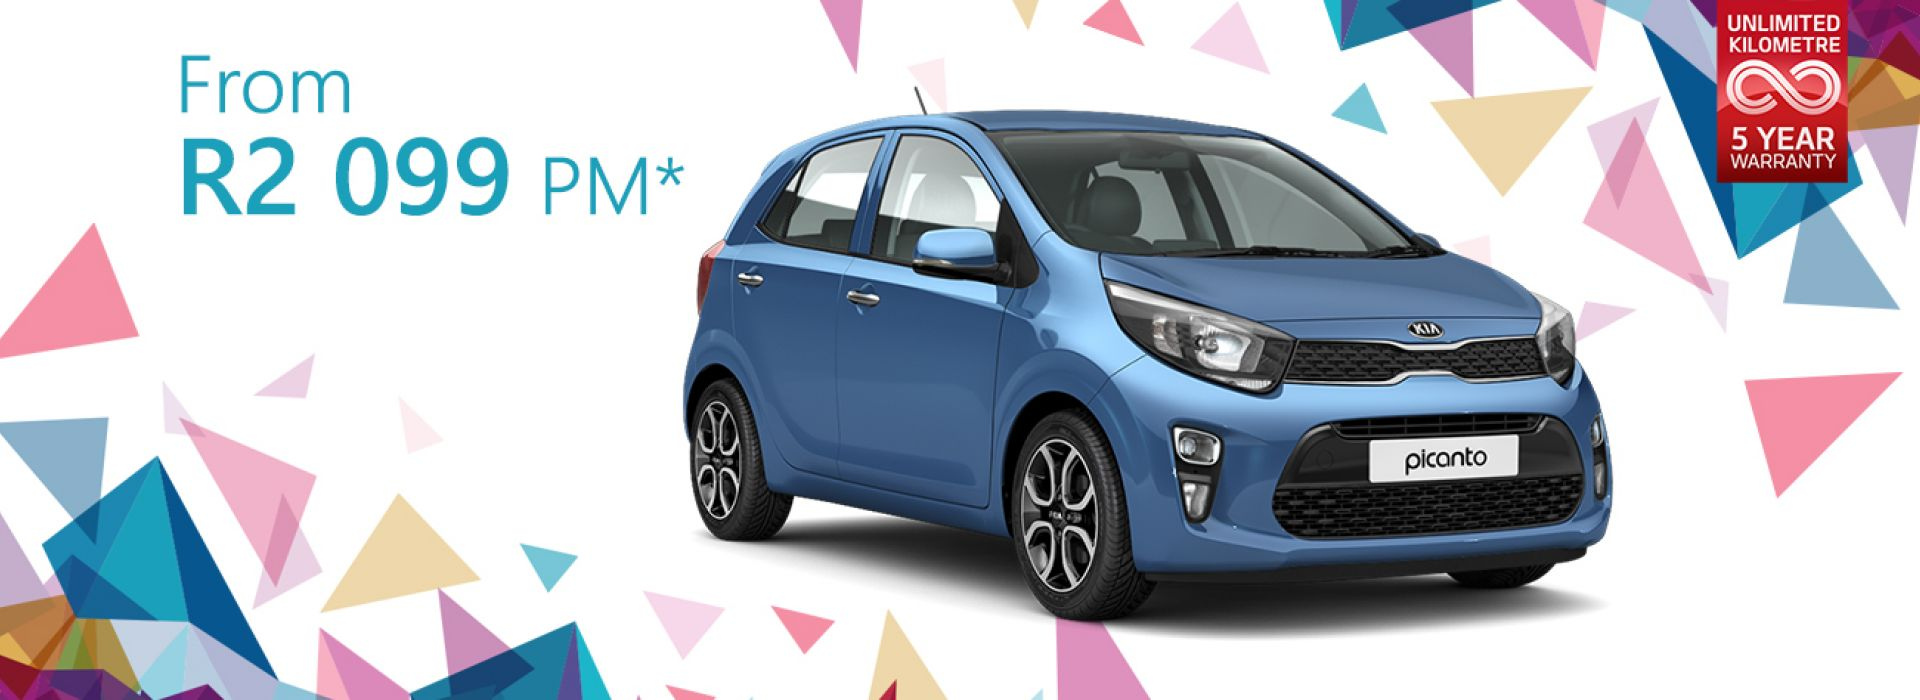 Kia Picanto from R2099 pm